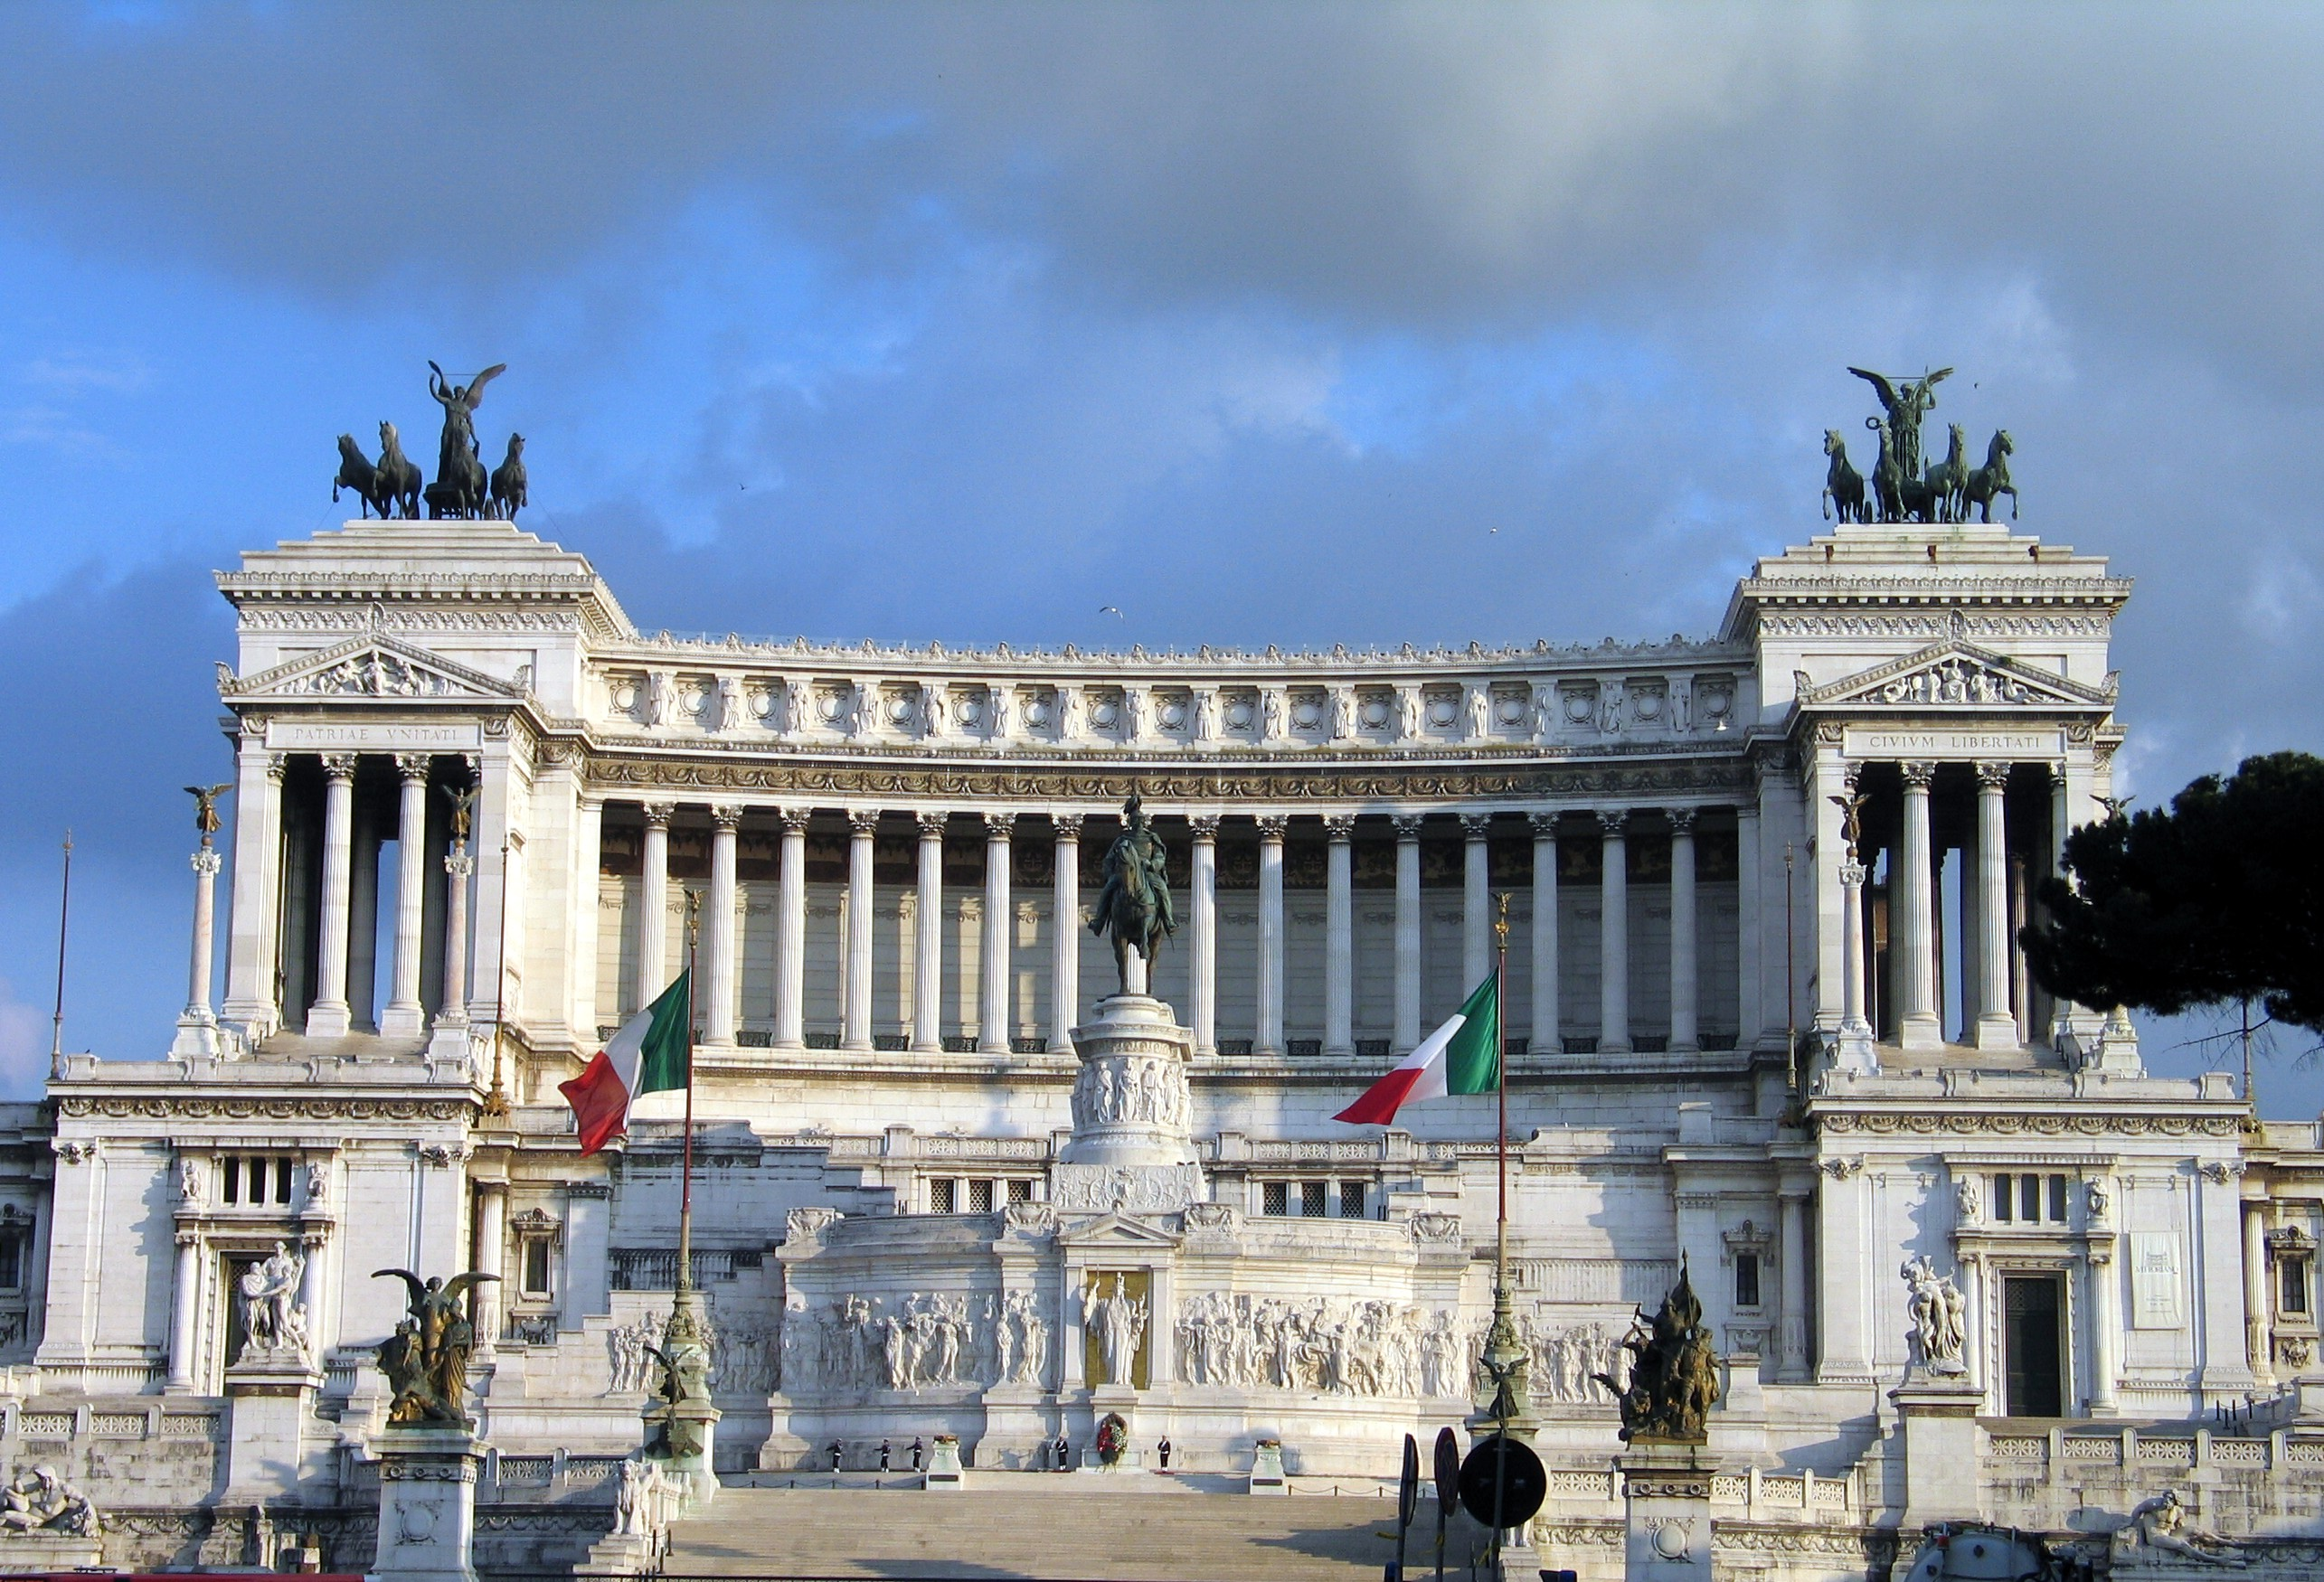 File:Piazza Venezia, Rooma 2006 037.jpg - Wikimedia Commons